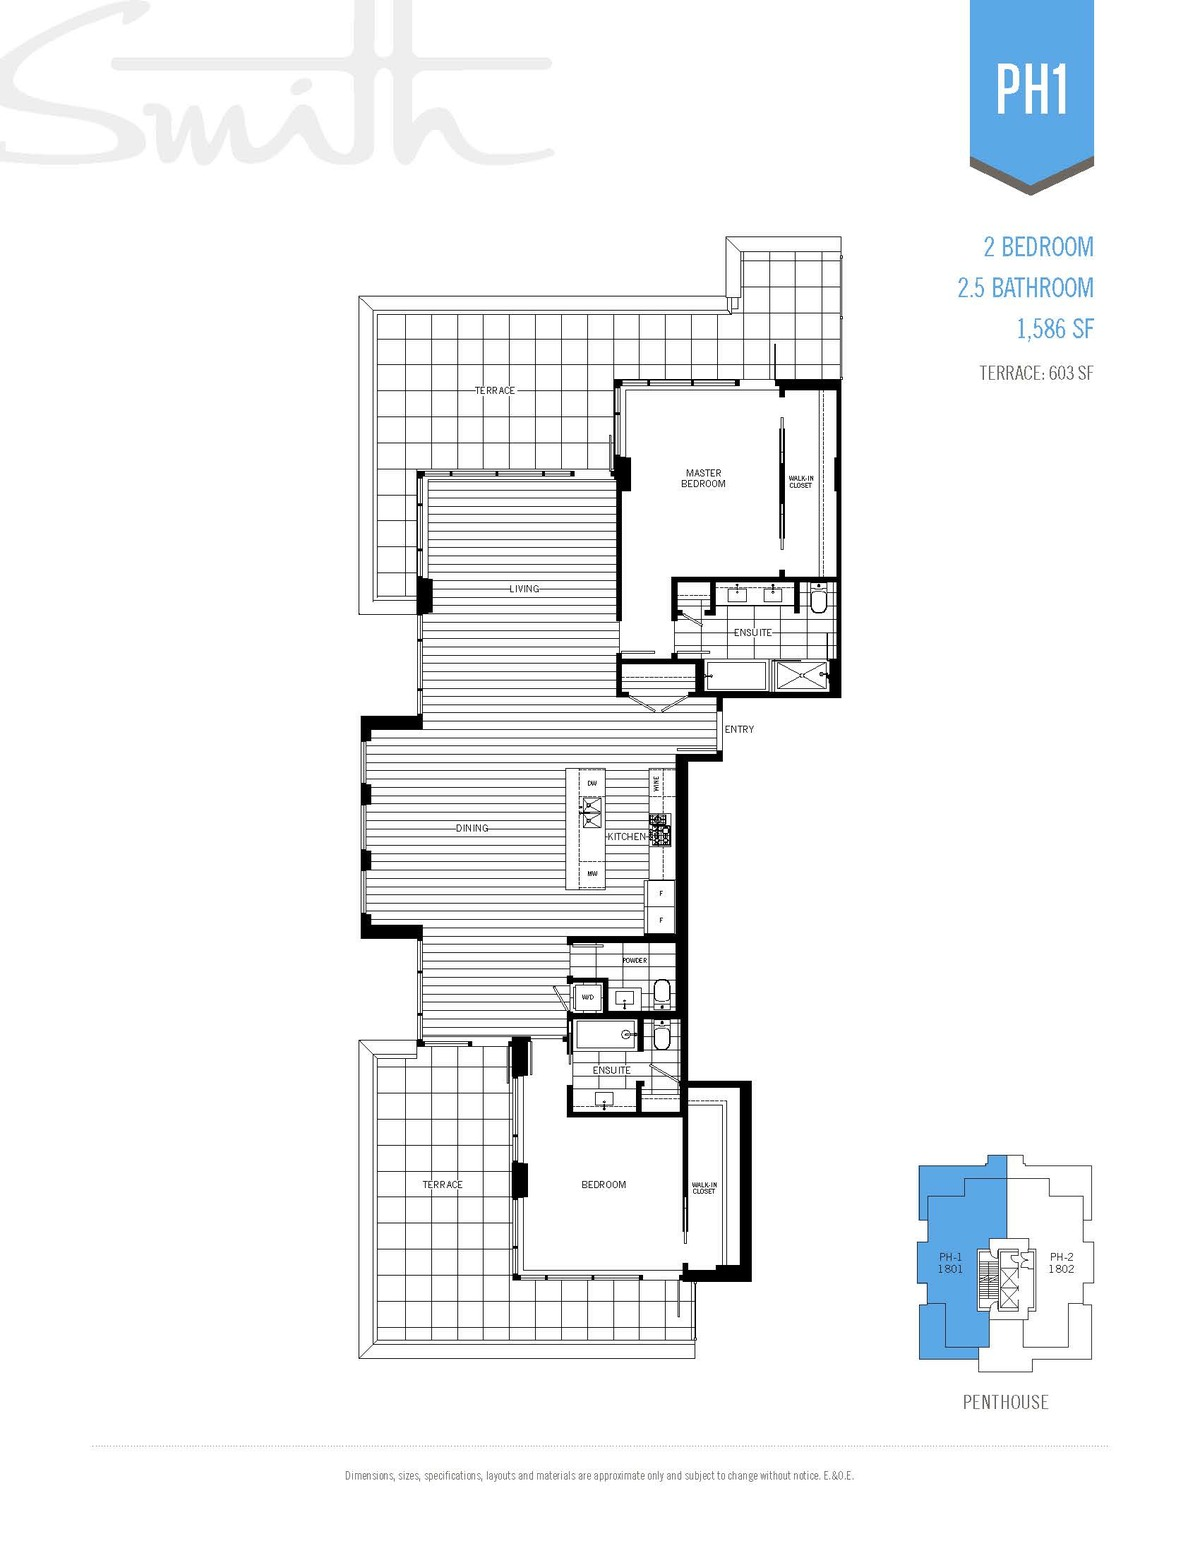 Smith Floorplan PH1